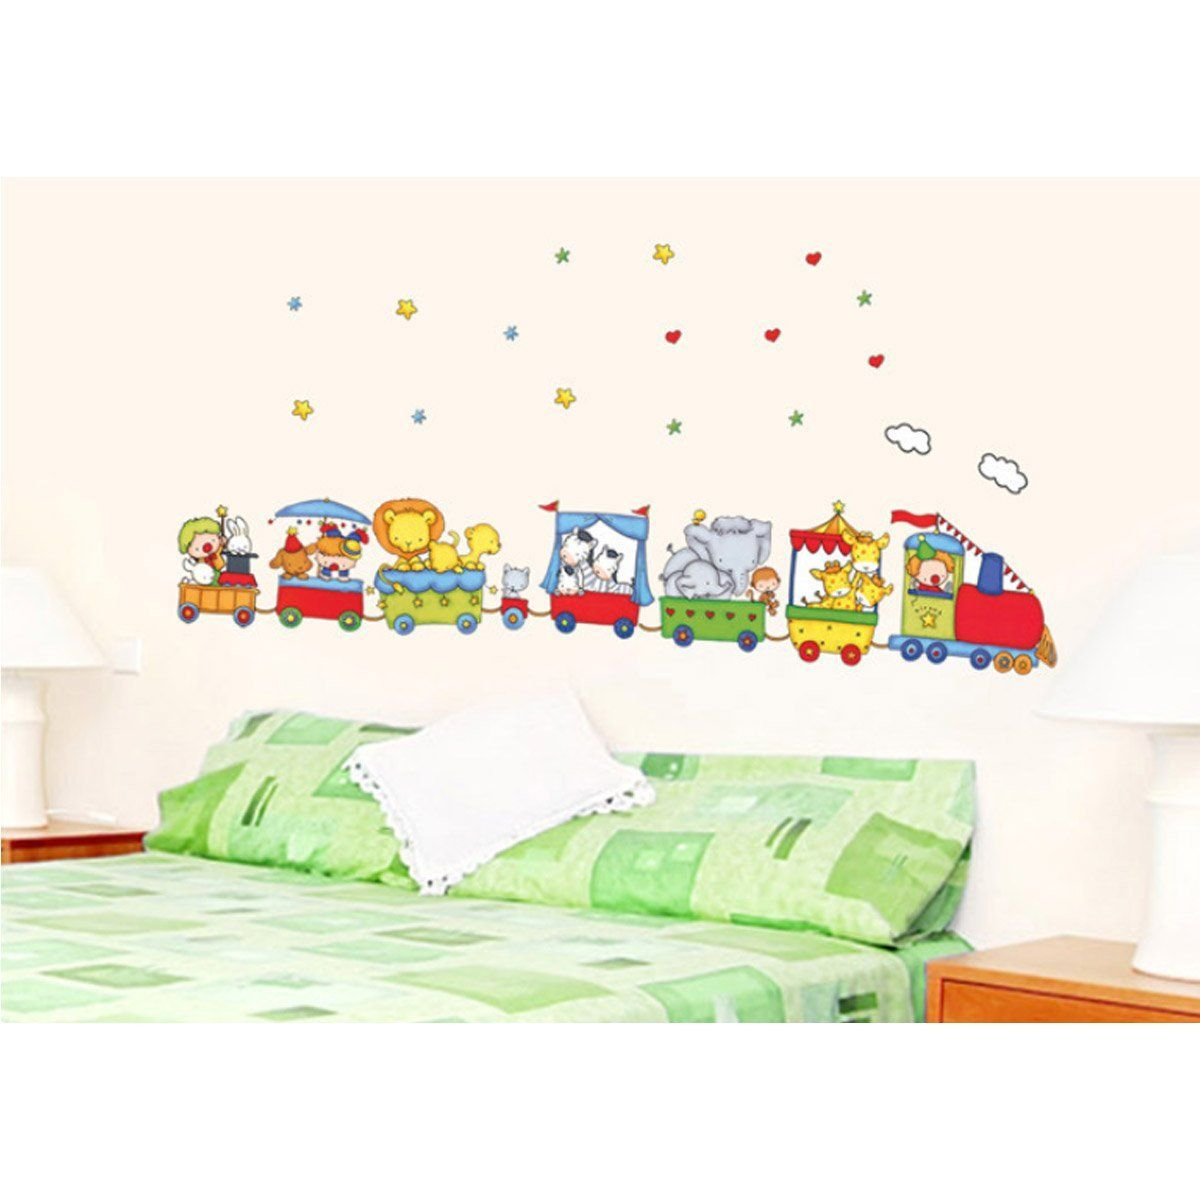 Yesurprise vinilo decorativo infantil pegatina pared for Pegatinas decorativas pared infantiles